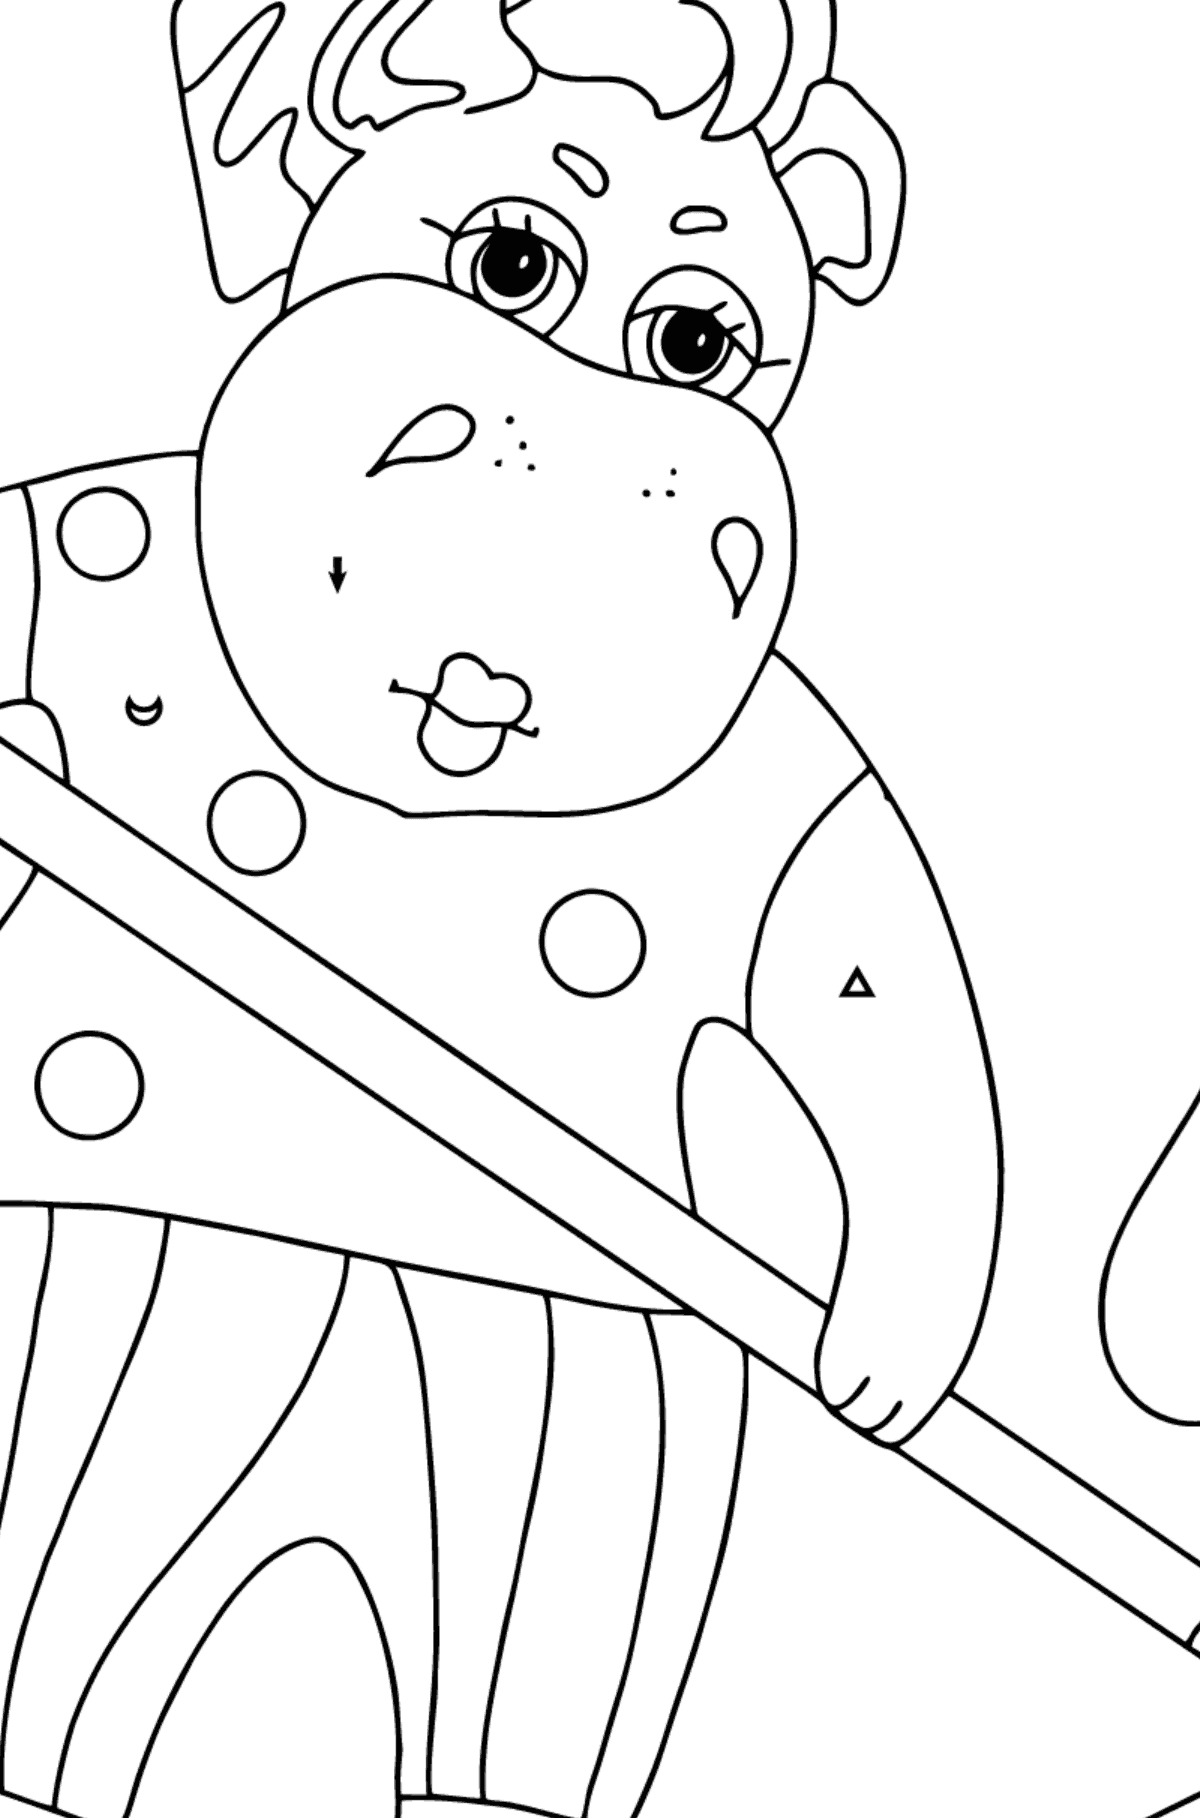 Coloring Page - A Hippo is Collecting Fallen Leaves for Children  - Color by Symbols and Geometric Shapes